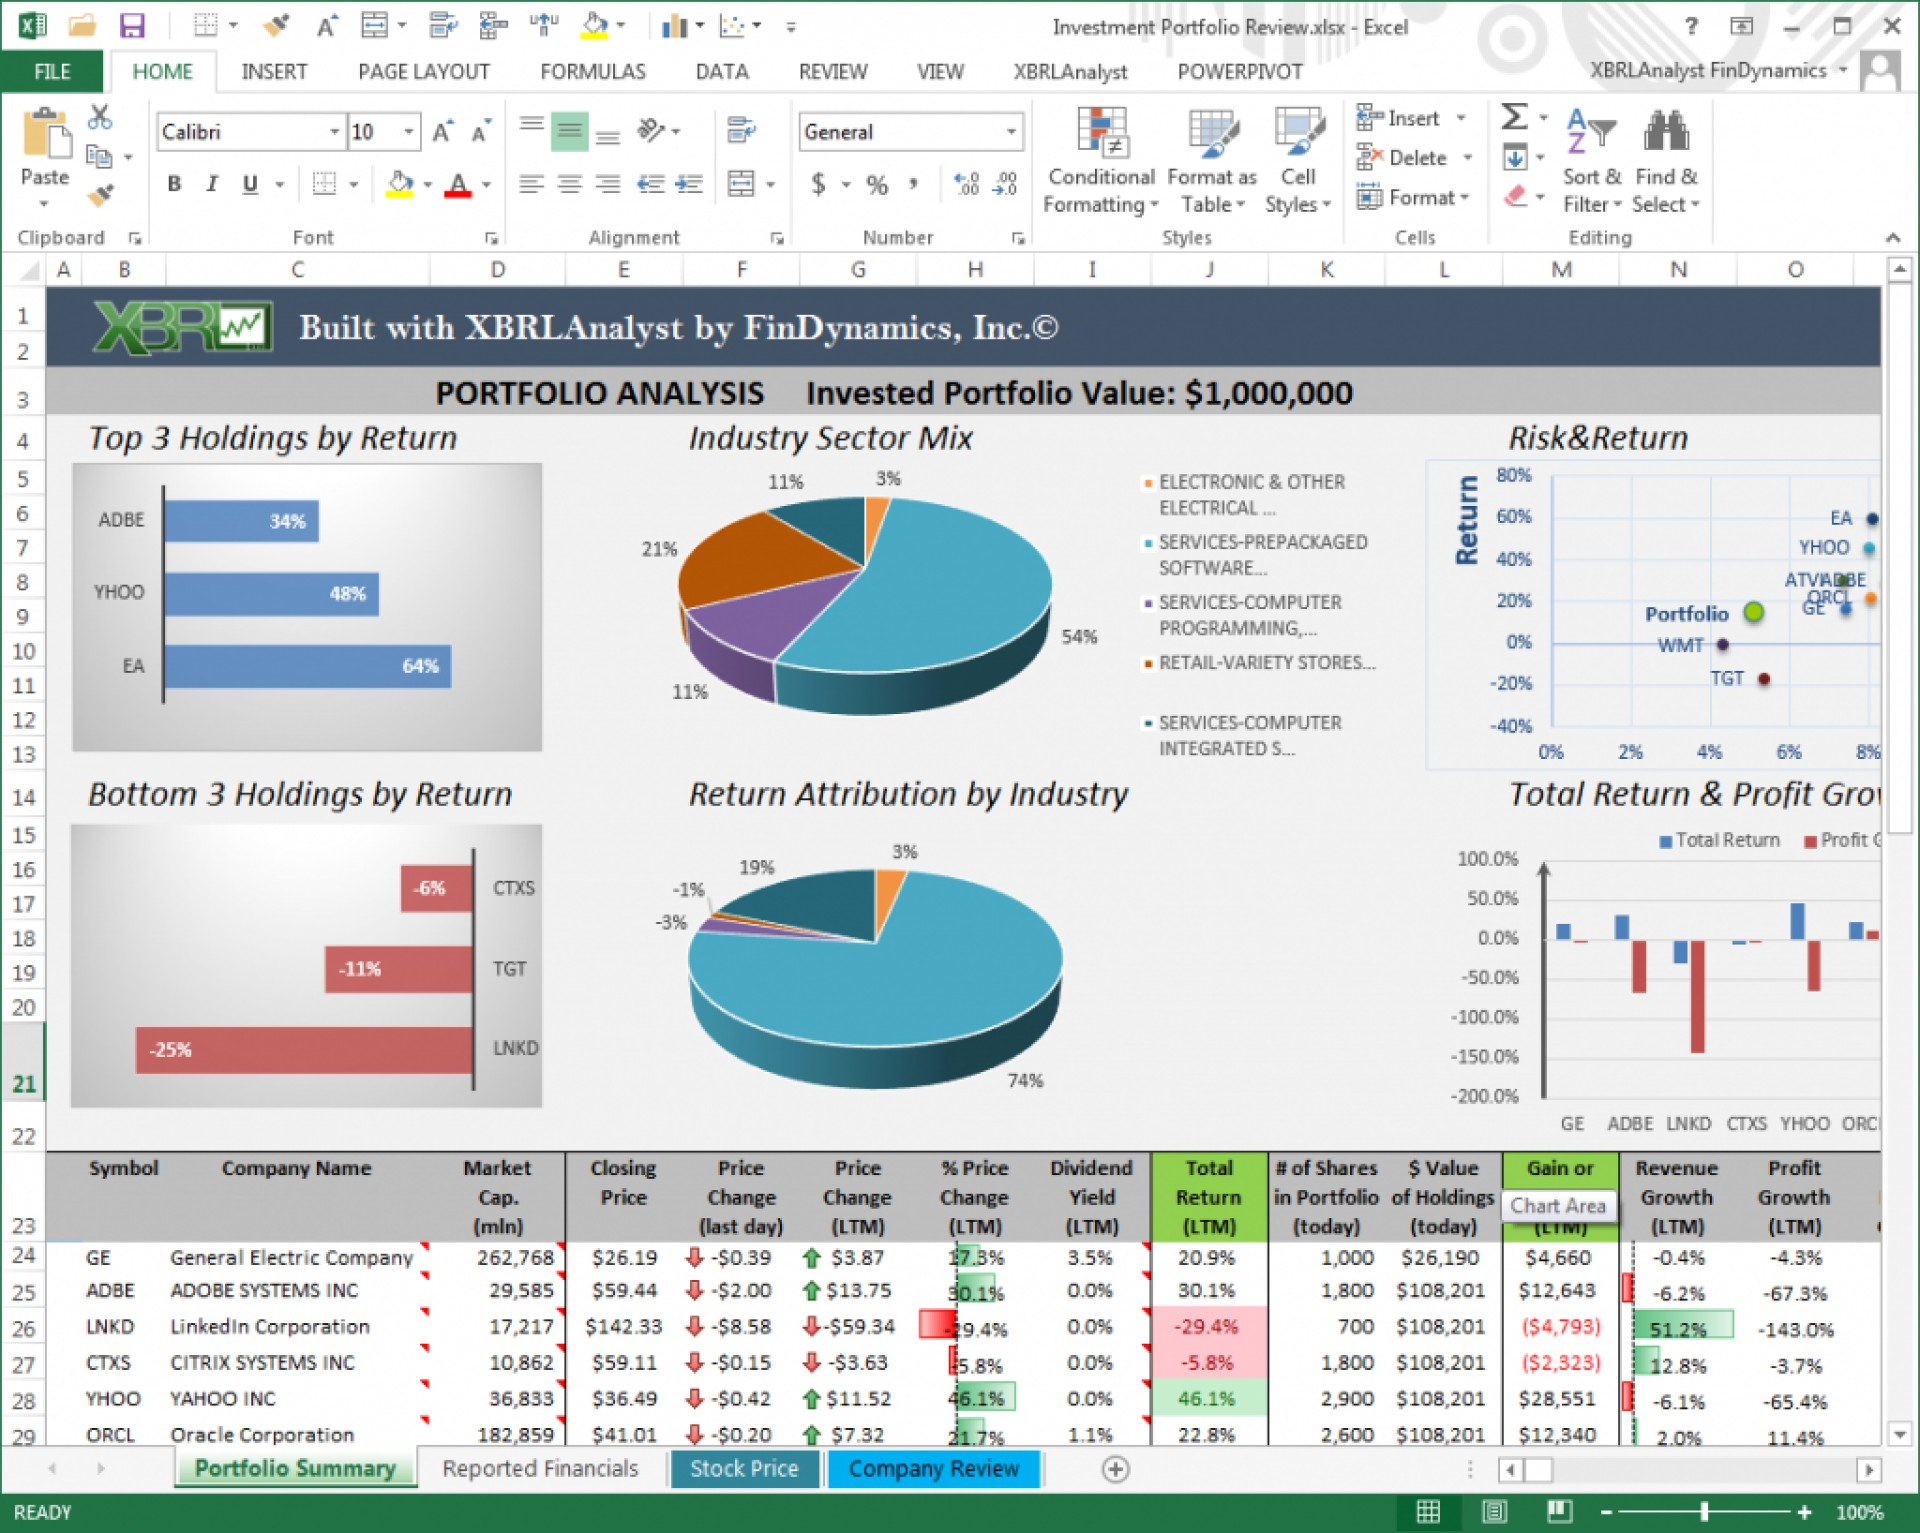 Free Excel Investment Portfolio Spreadsheet Intended For 001 Stock Portfolio Excel Template Ideas ~ Ulyssesroom